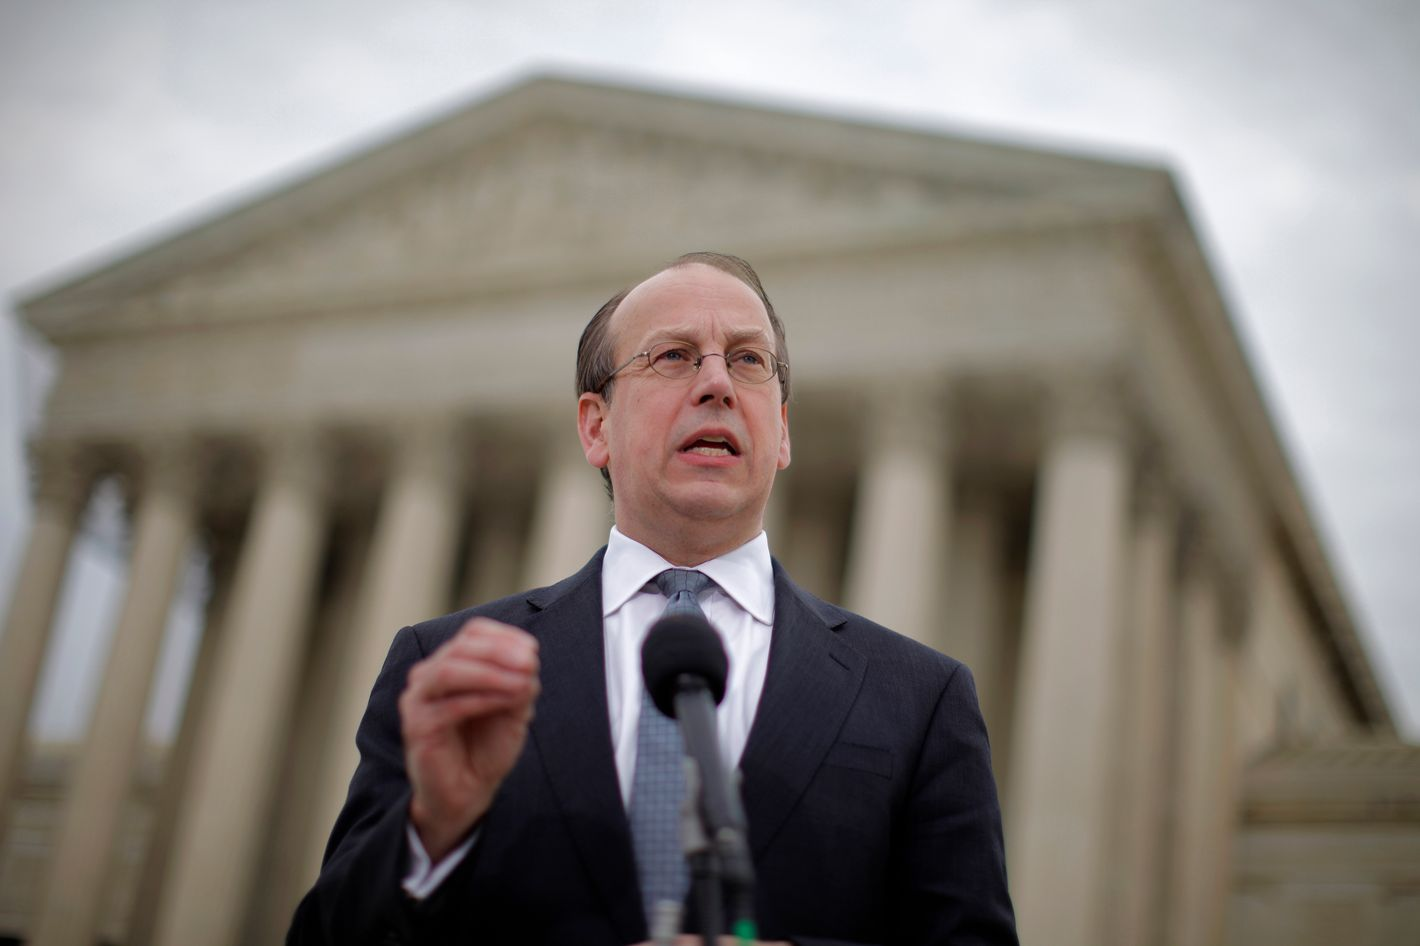 Paul Clement, a lawyer for 26 states seeking to have the Patient Protection and Affordable Care Act tossed out in its entirety, speaks to reporters in front of the Supreme Court in Washington, Wednesday, March 28, 2012, at the end of arguments regarding the health care law signed by President Barack Obama. (AP Photo/Charles Dharapak)